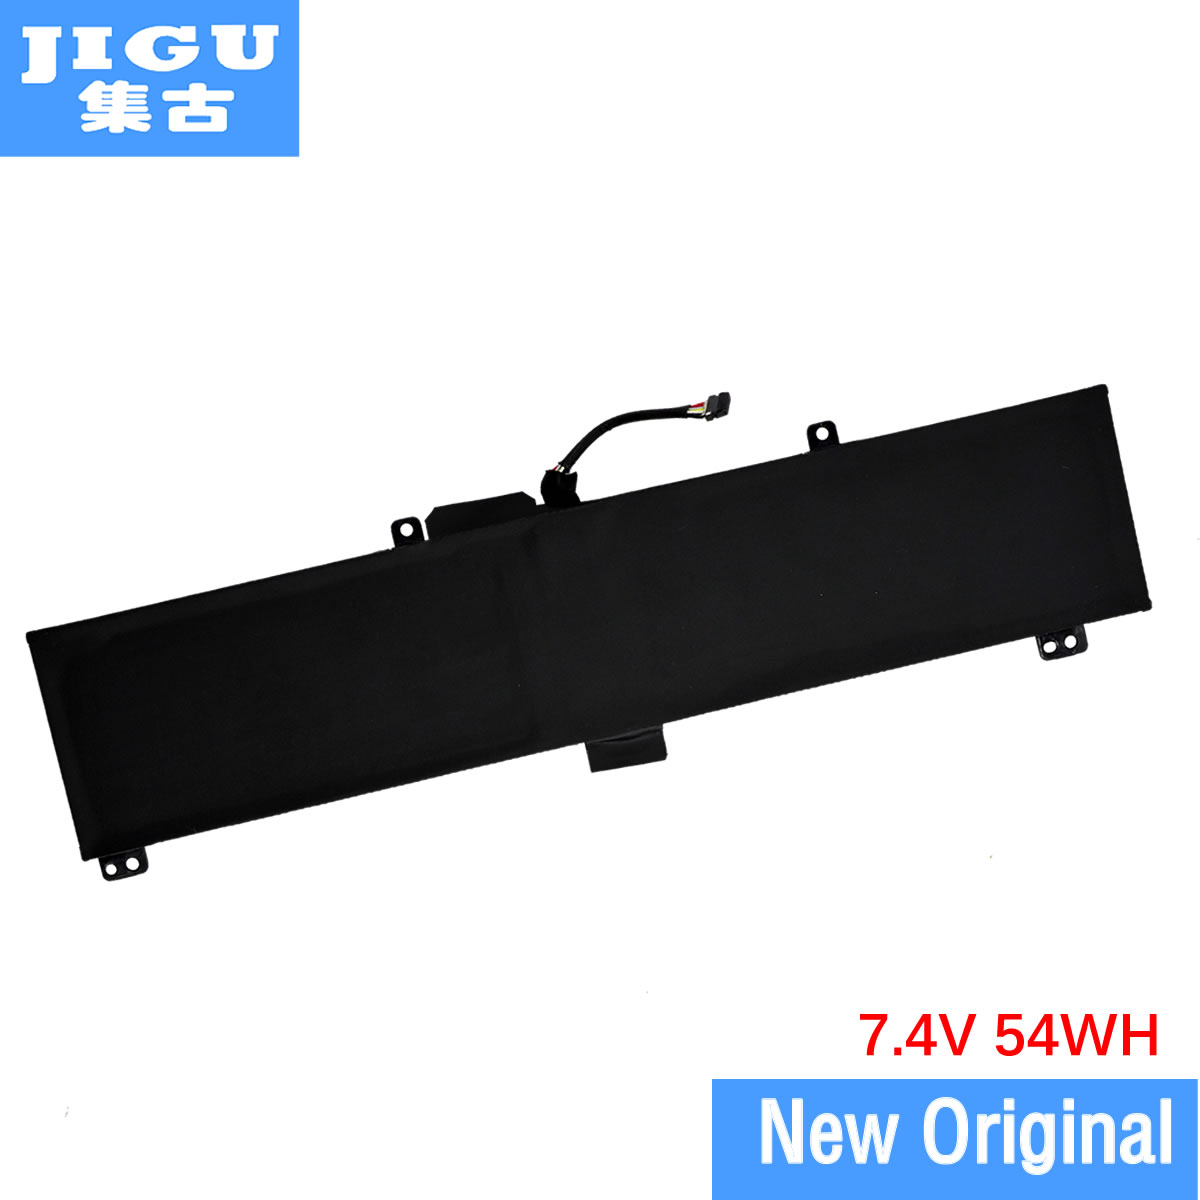 JIGU L13L4P01 L13M4P02 L13N4P01 Original laptop Battery For Lenovo Y50 Y50-70 Y50P Y50-70AM-IFI Y50-70AS-ISE 7.4V 54WH 7xinbox 15 2v 50wh laptop battery for lenovo asm p n sb10f46441 fru p n oohw003 4icp5 58 73 2